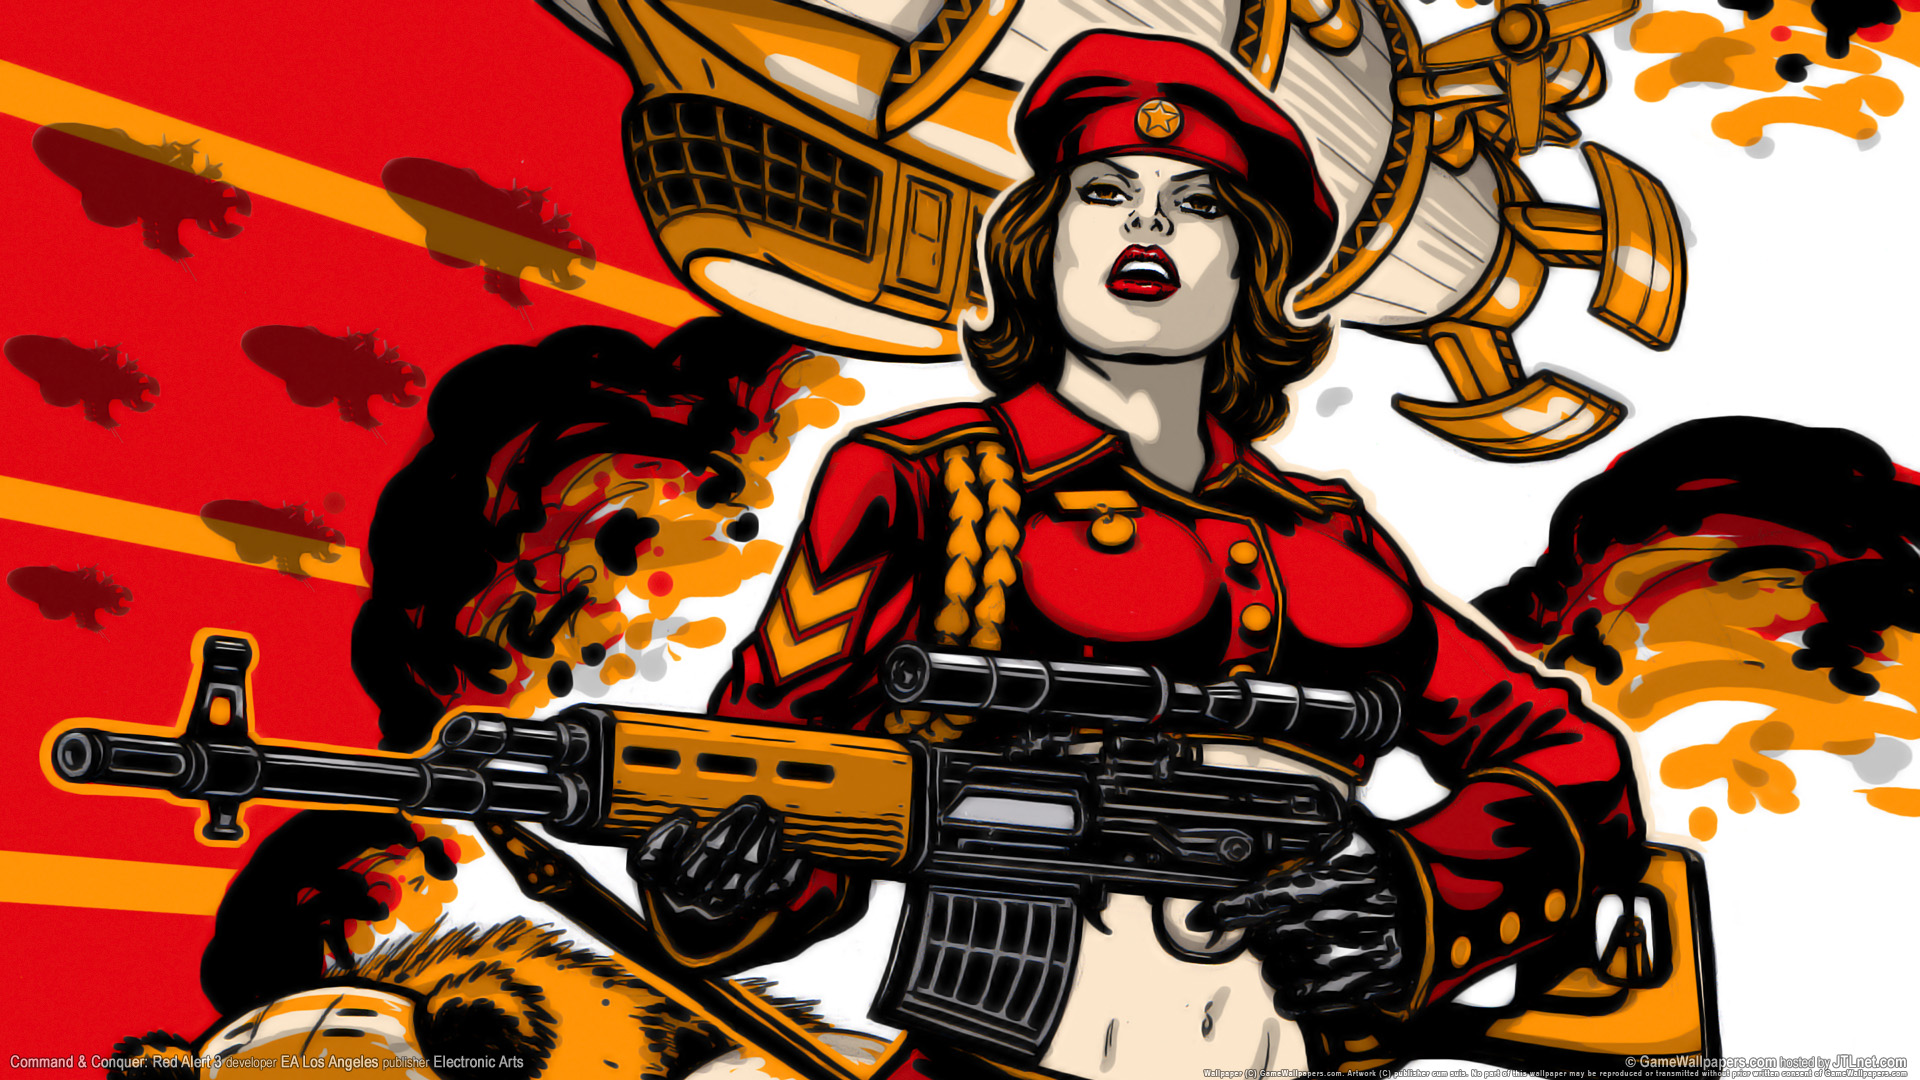 High Resolution Wallpaper | Command & Conquer: Red Alert 3 1920x1080 px